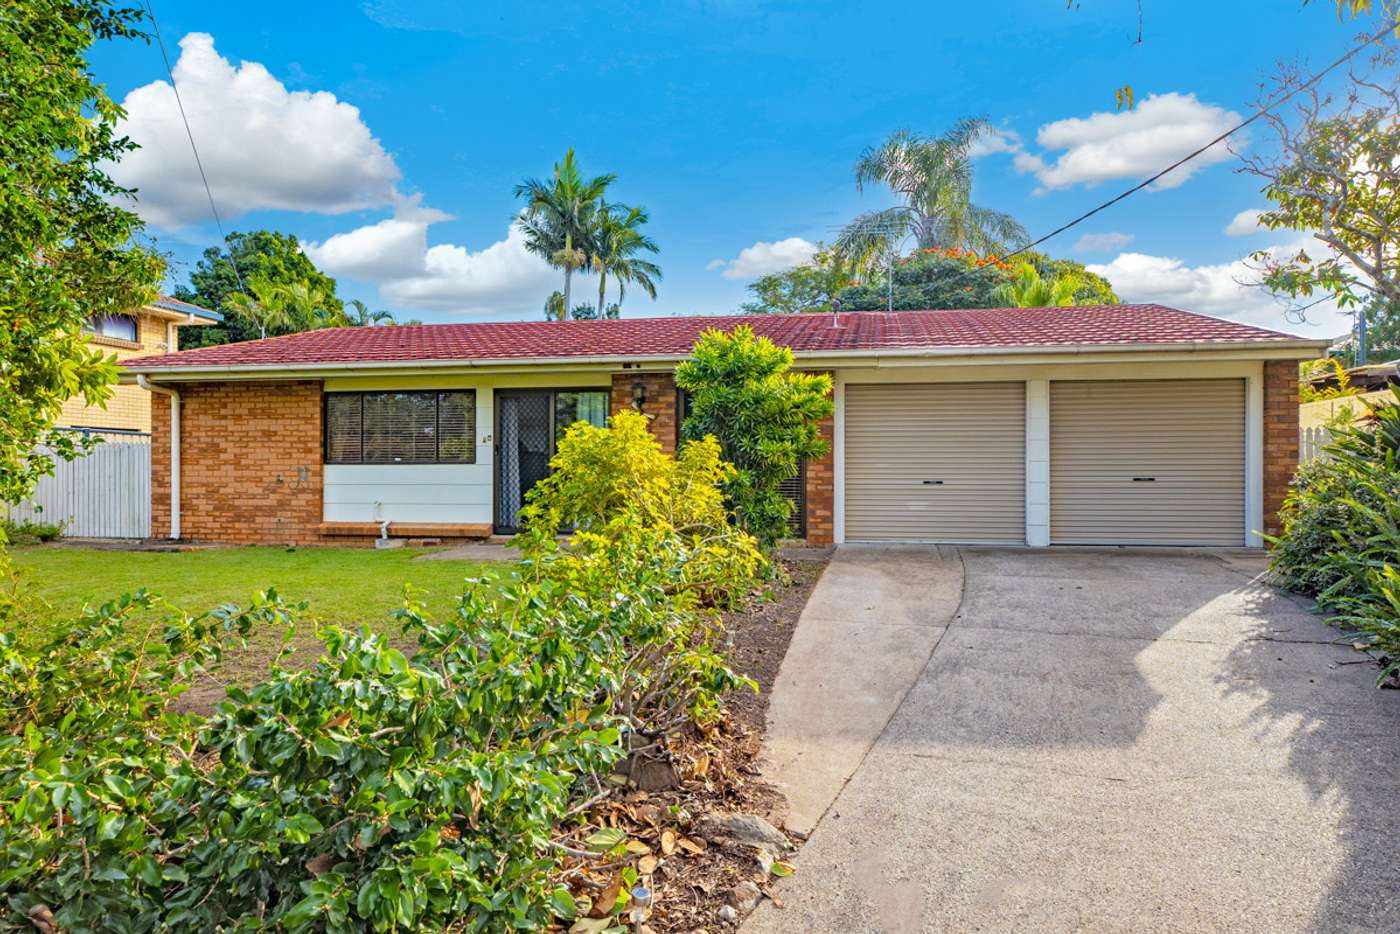 Main view of Homely house listing, 3 Nereid Street, Capalaba QLD 4157